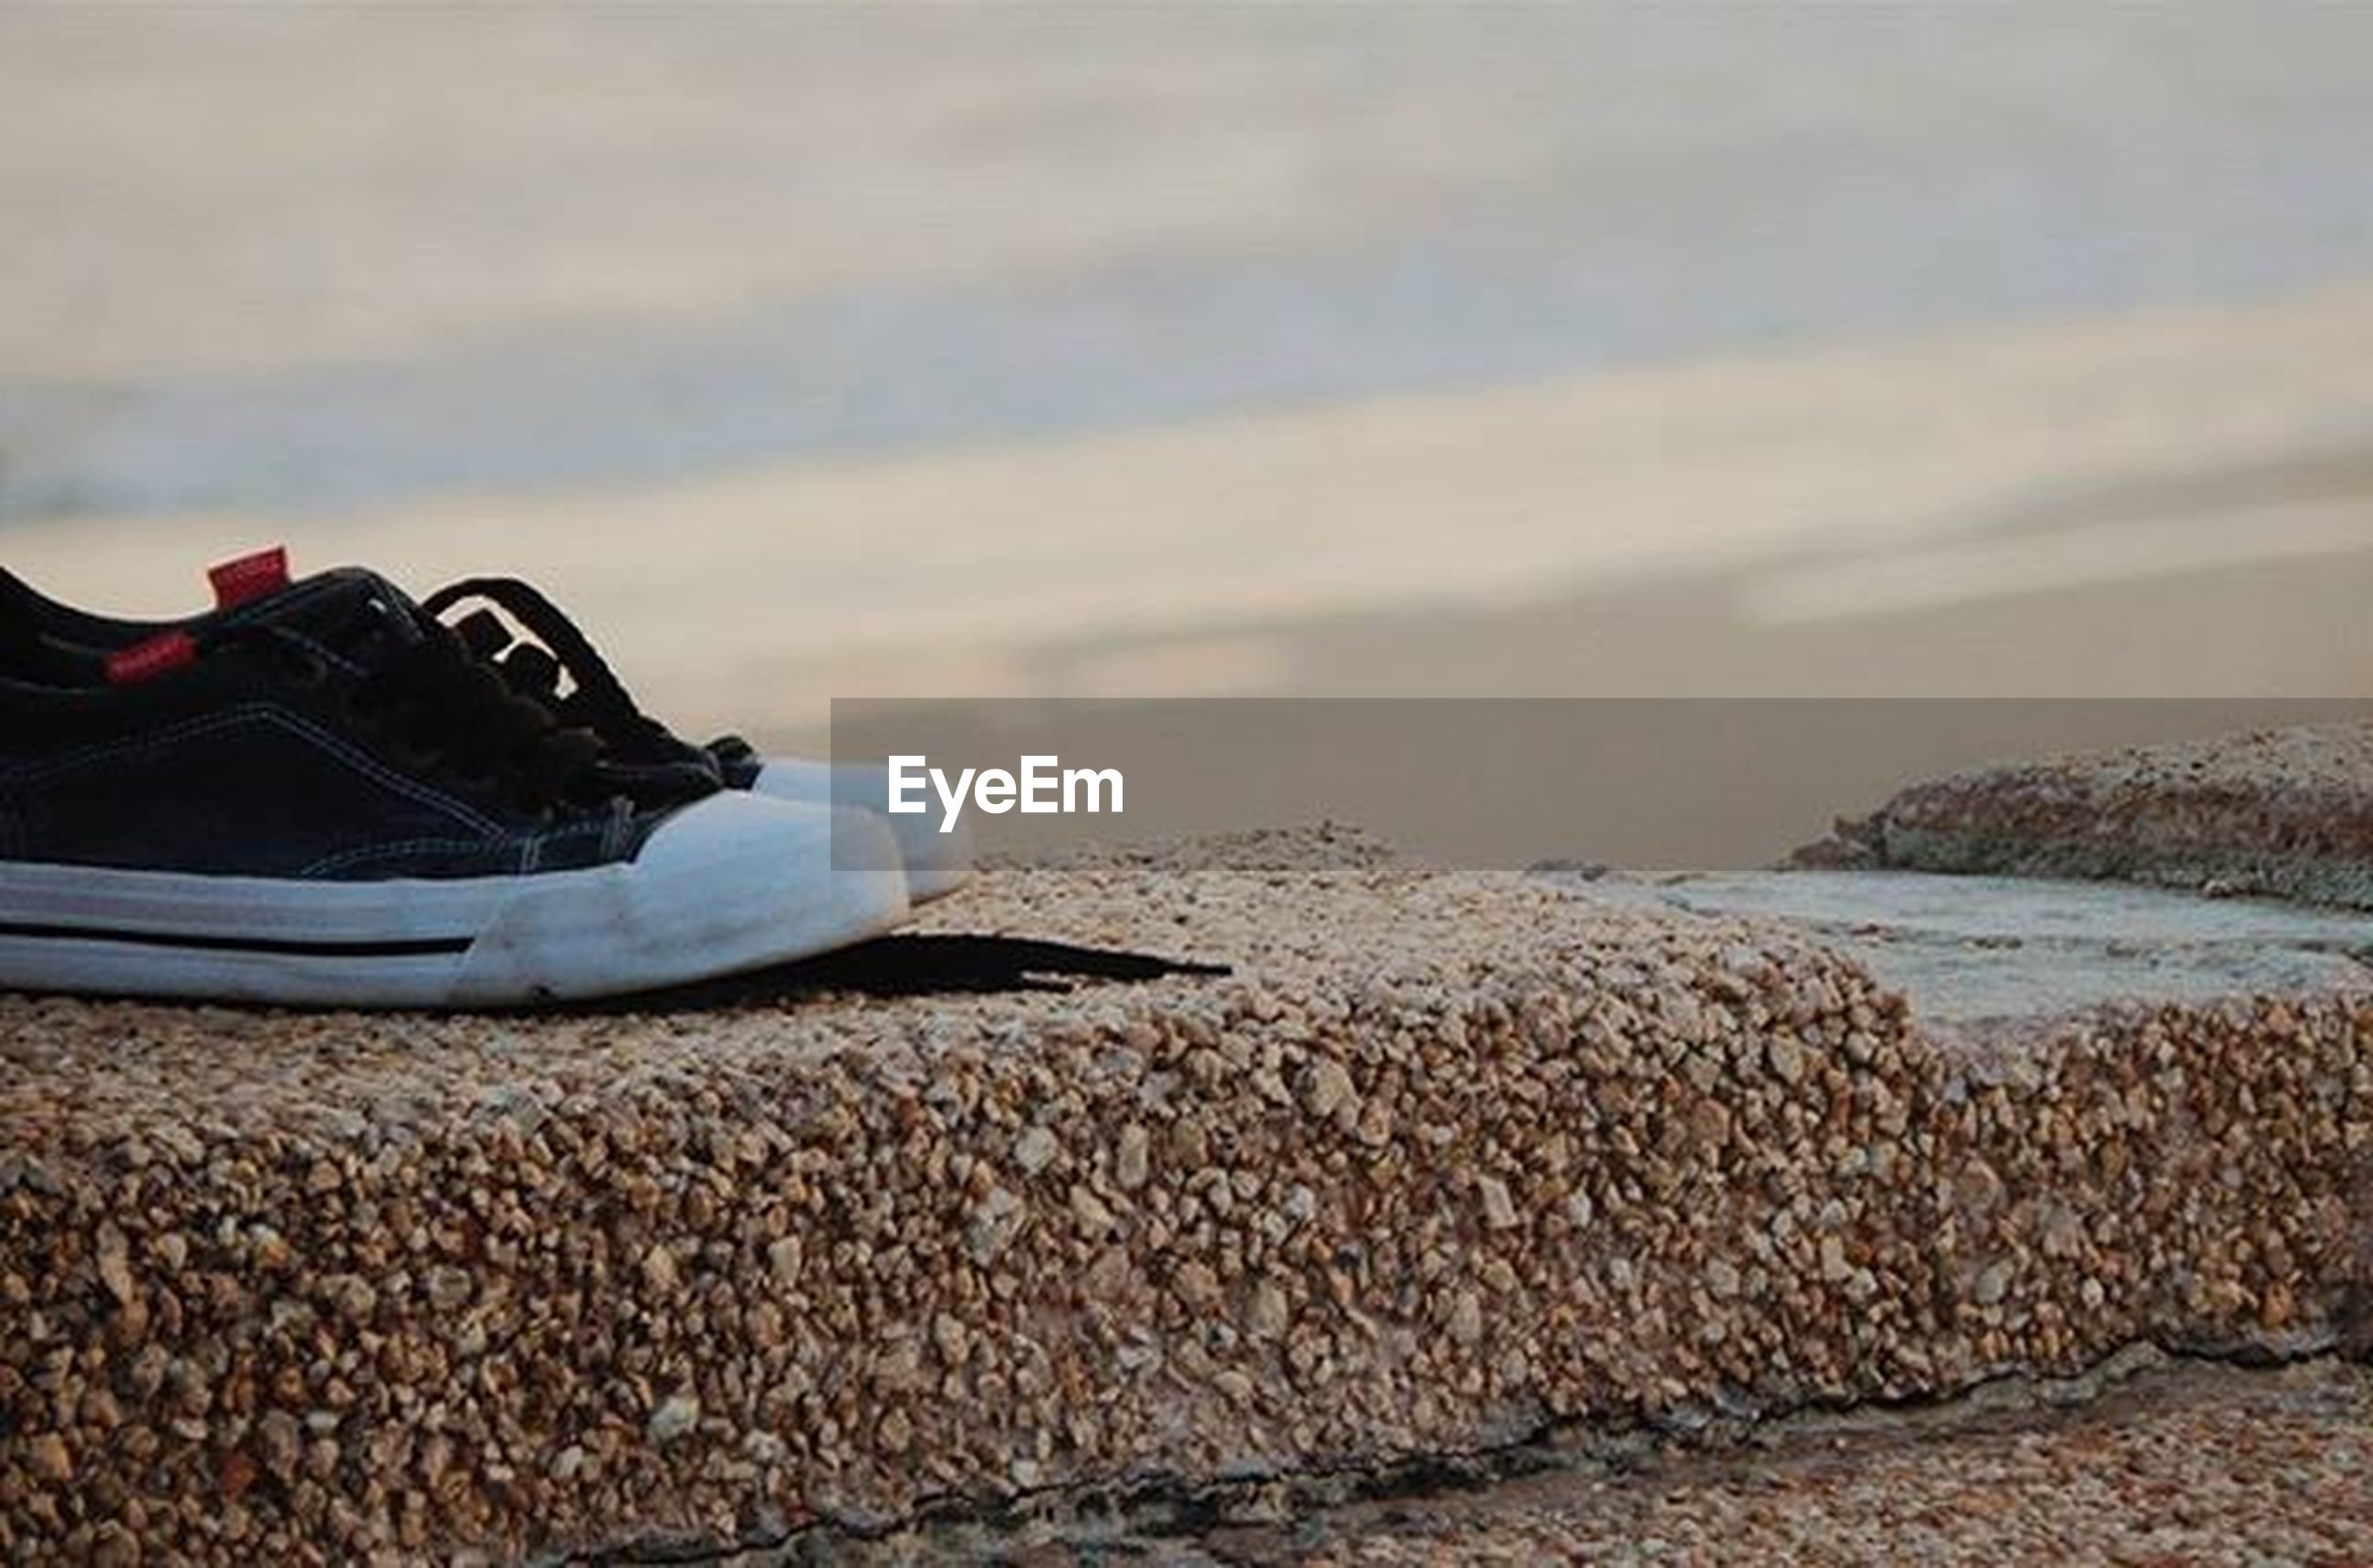 beach, sand, shore, sea, focus on foreground, sky, day, water, shoe, outdoors, rock - object, lifestyles, nature, stone - object, close-up, pebble, leisure activity, transportation